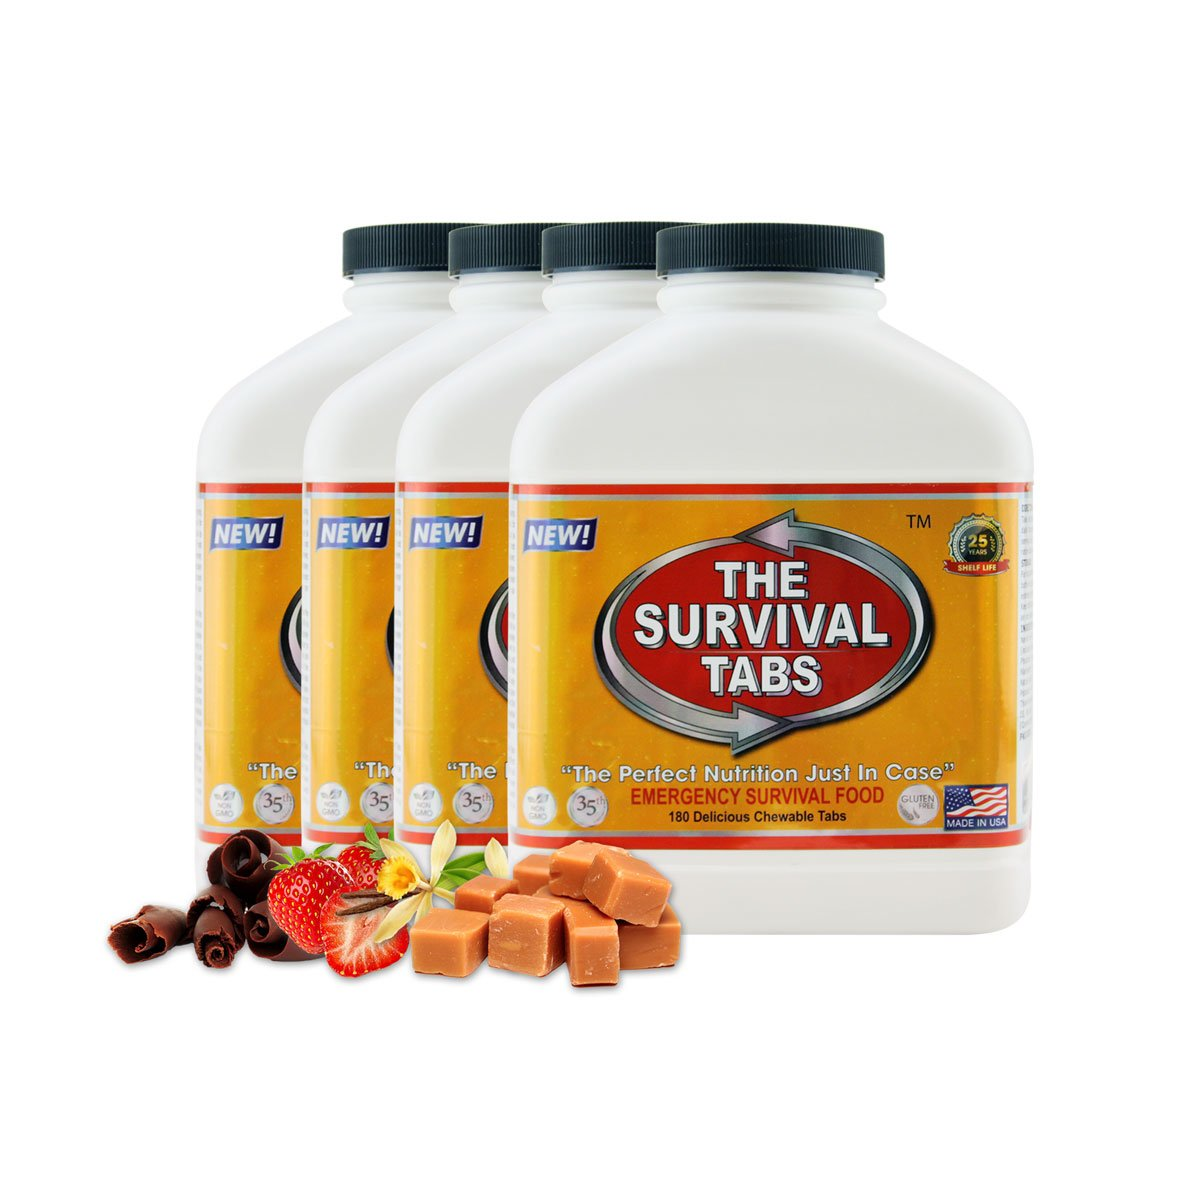 Survival Tabs 60-Day 720 Tabs Emergency Food Ration Survival MREs Food Replacement for Outdoor Activities Disaster Preparedness Gluten Free and Non-GMO 25 Years Shelf Life Long Term - Mixed Flavor by The Survival Tabs